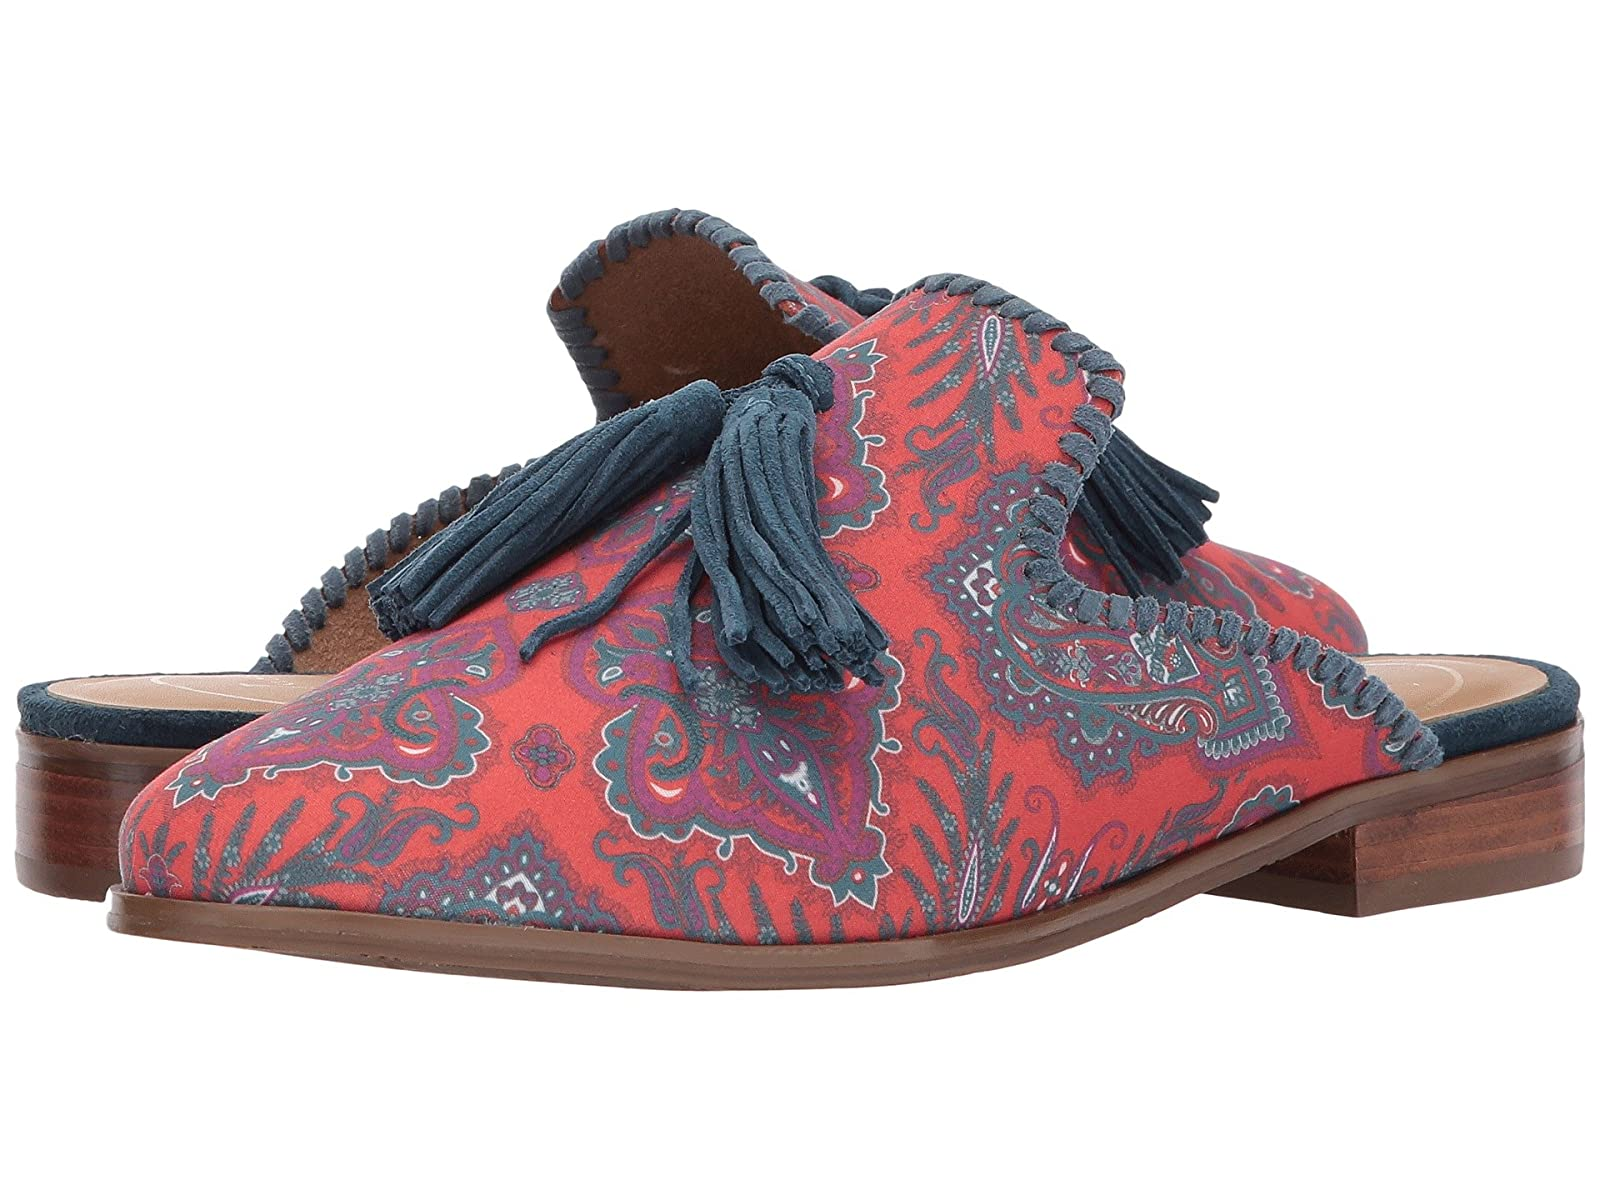 Jack Rogers DelaneyCheap and distinctive eye-catching shoes